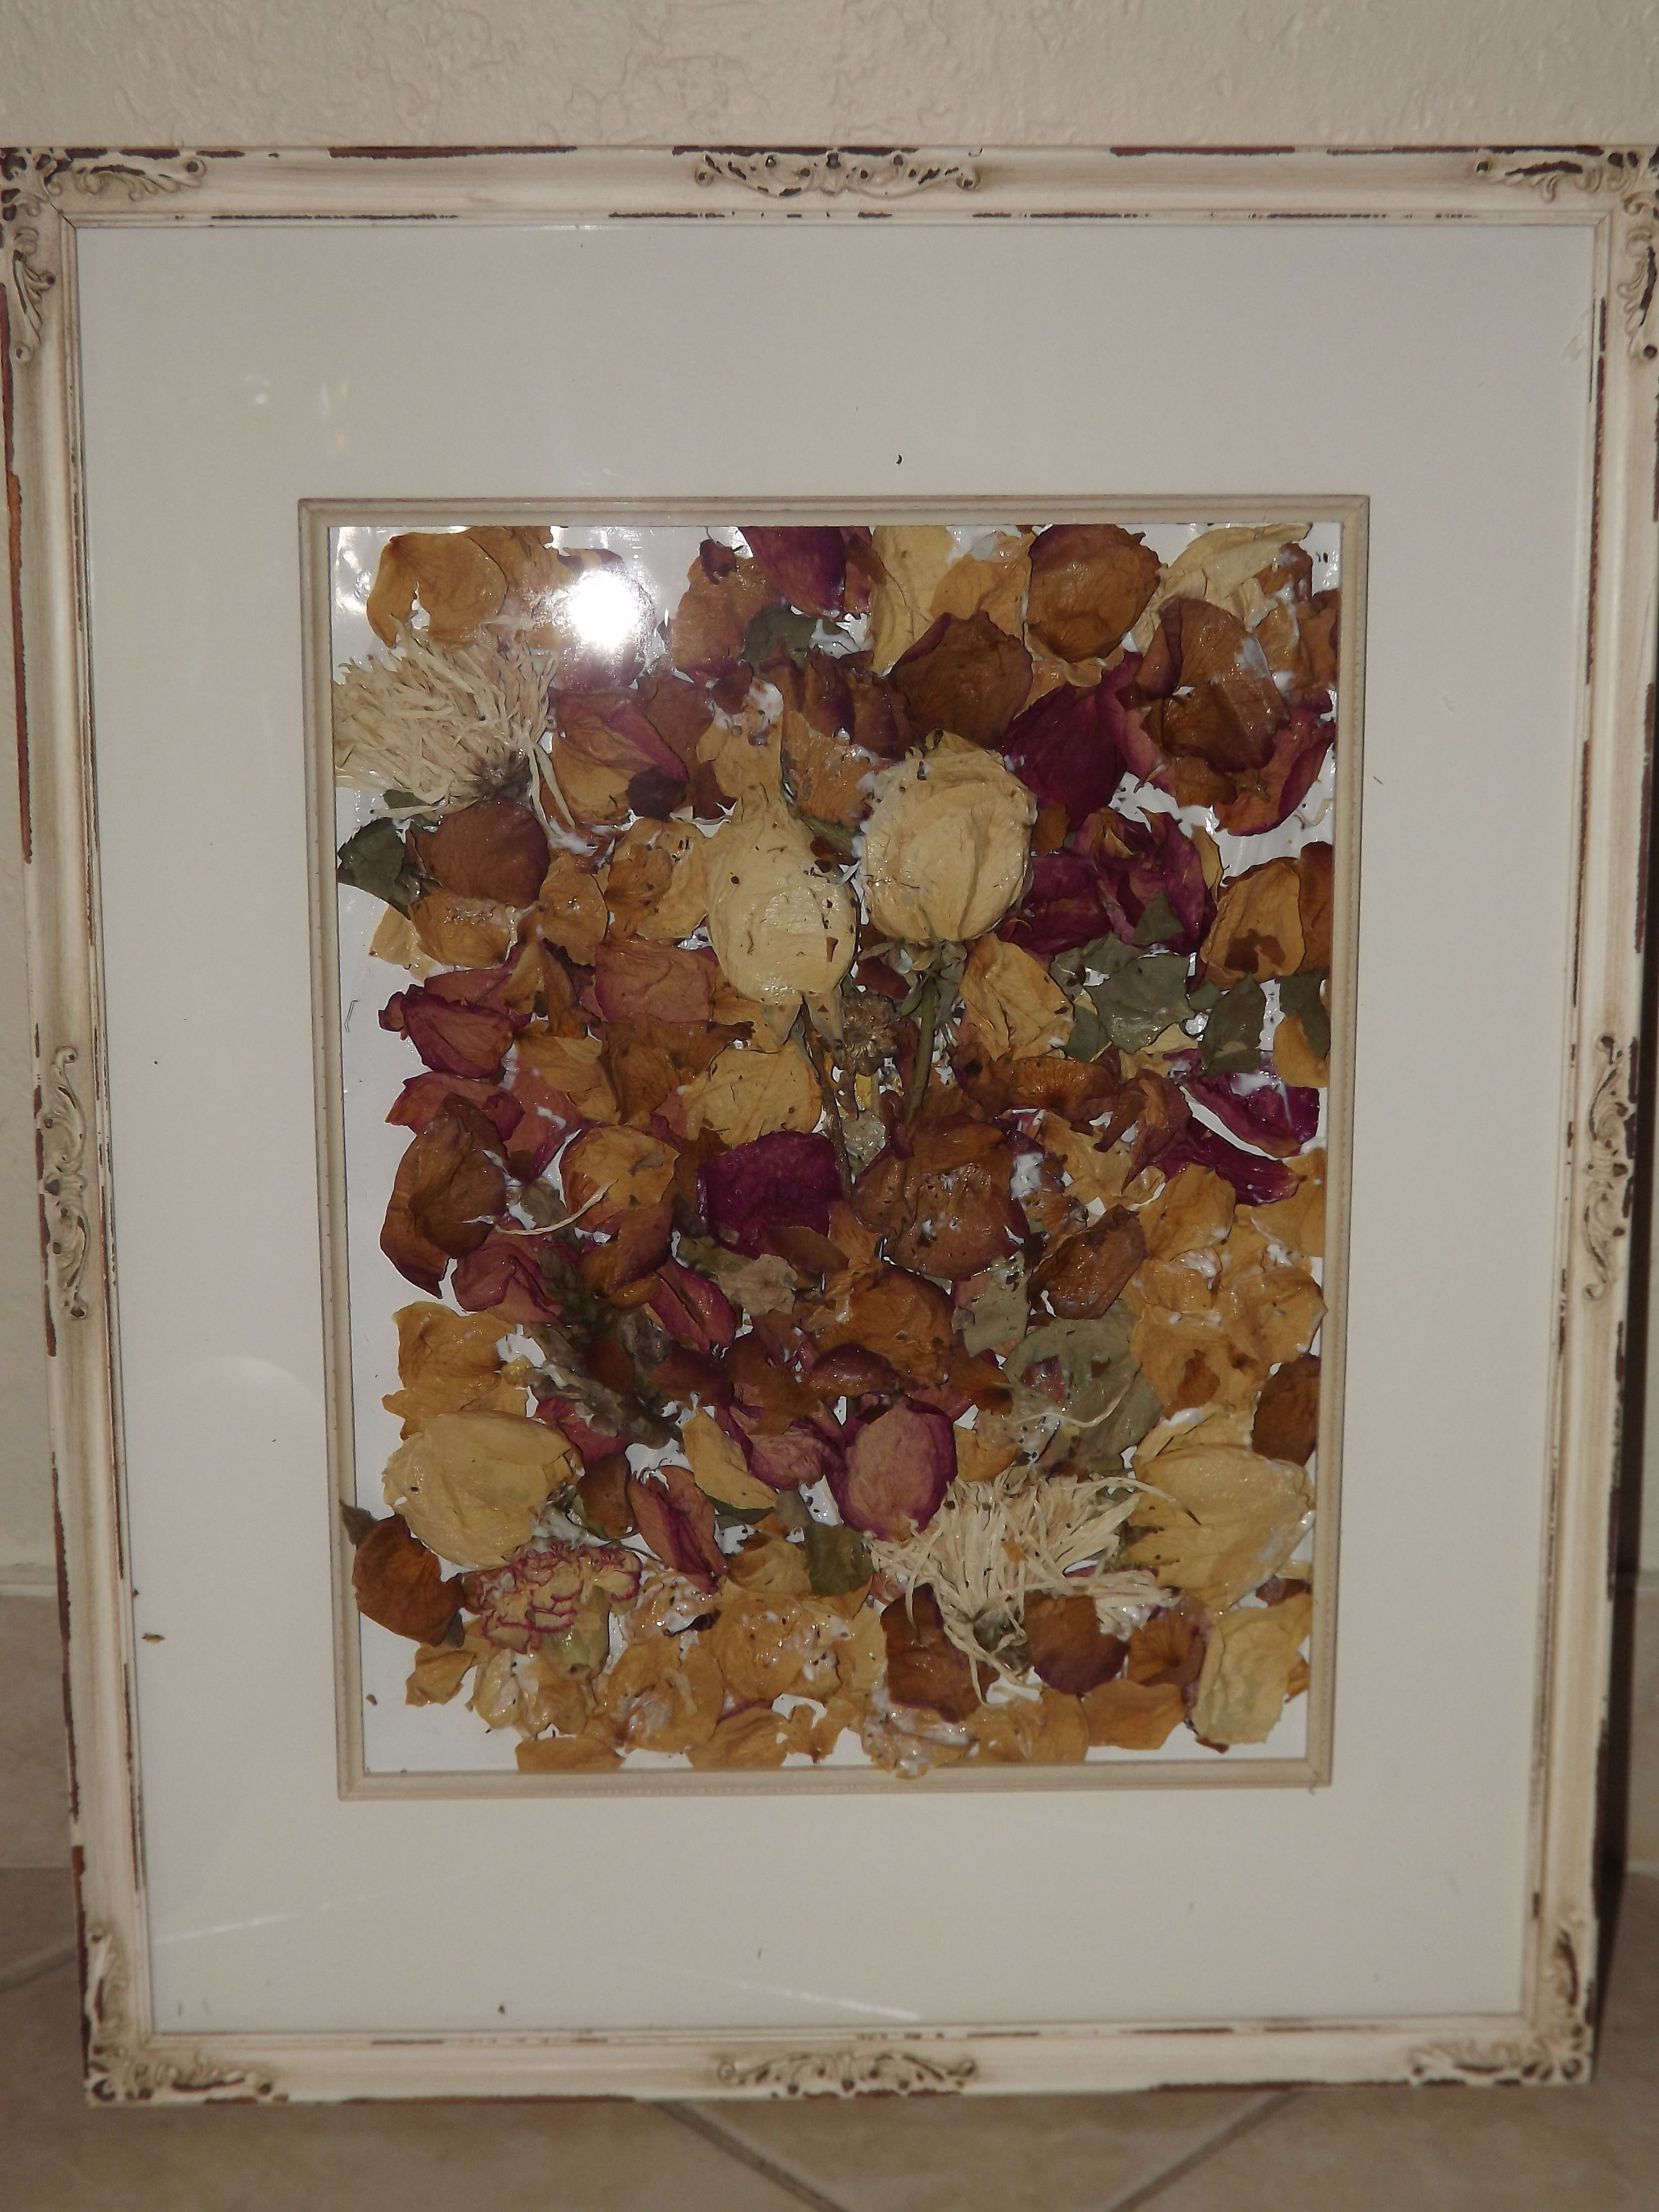 I Made This With The Dried Flowers From My Fathers Memorial As A